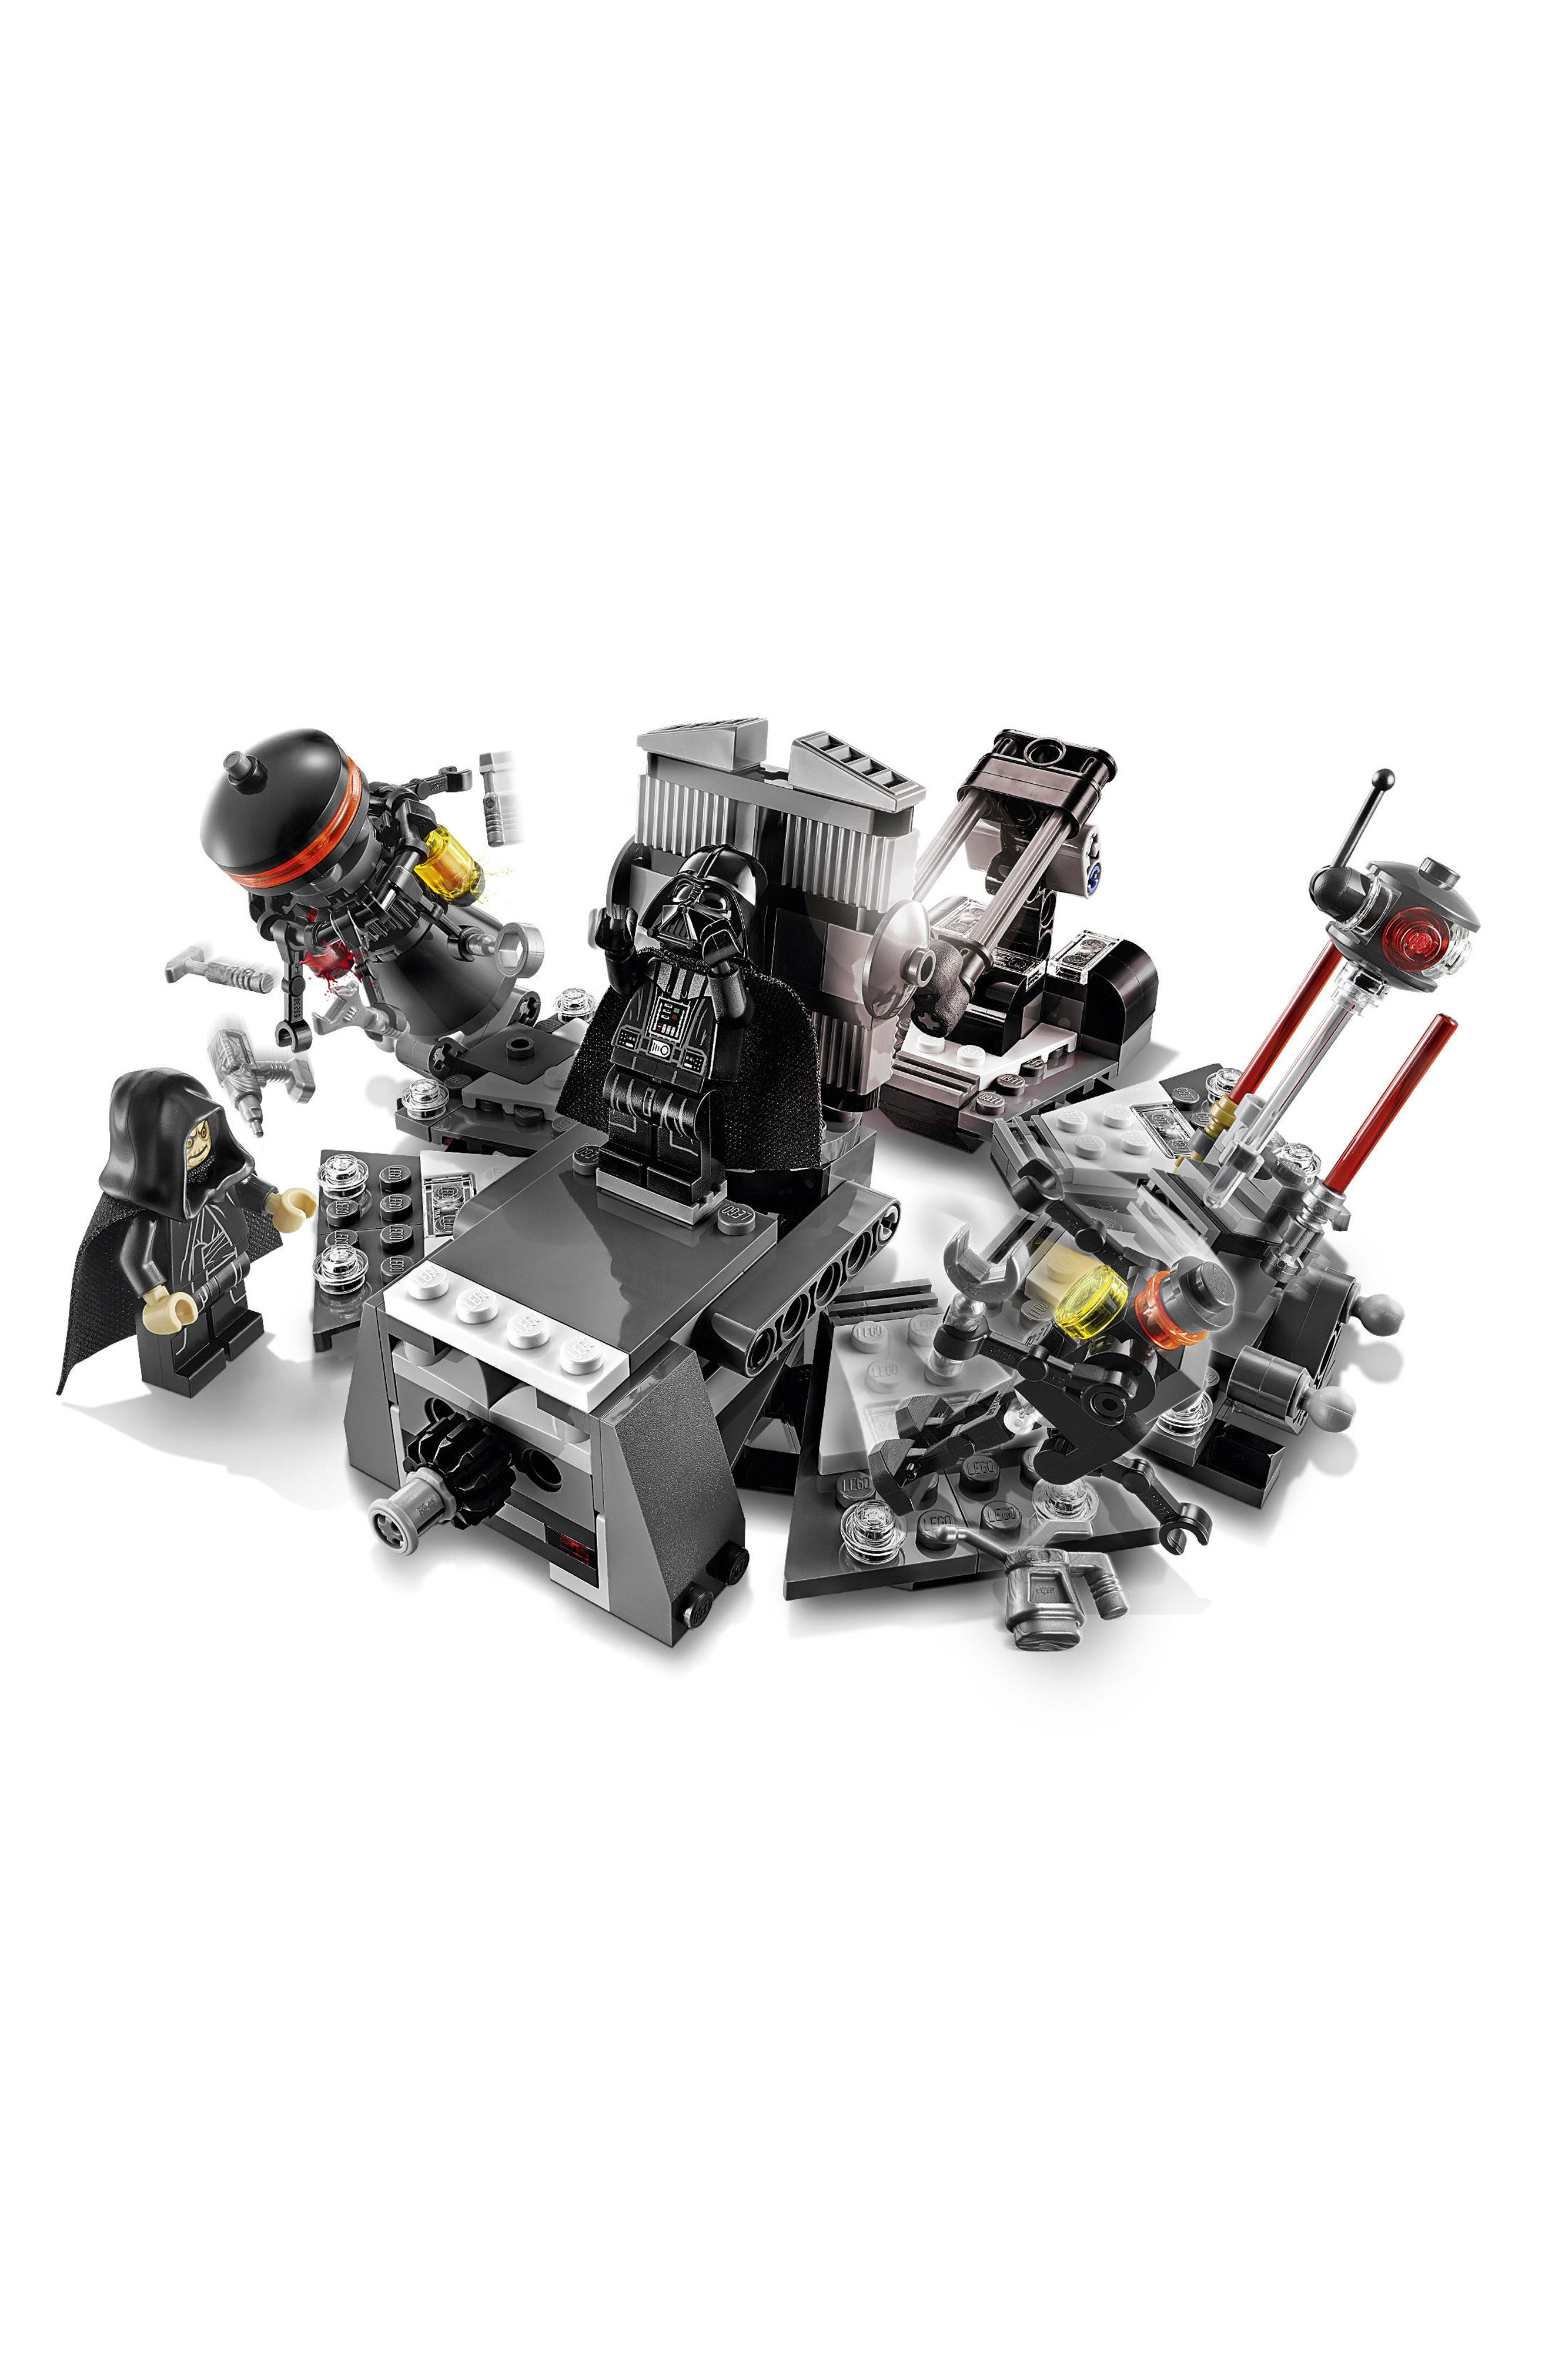 Star Wars<sup>™</sup> Revenge of the Sith Darth Vader Transformation - 75183,                             Alternate thumbnail 4, color,                             020